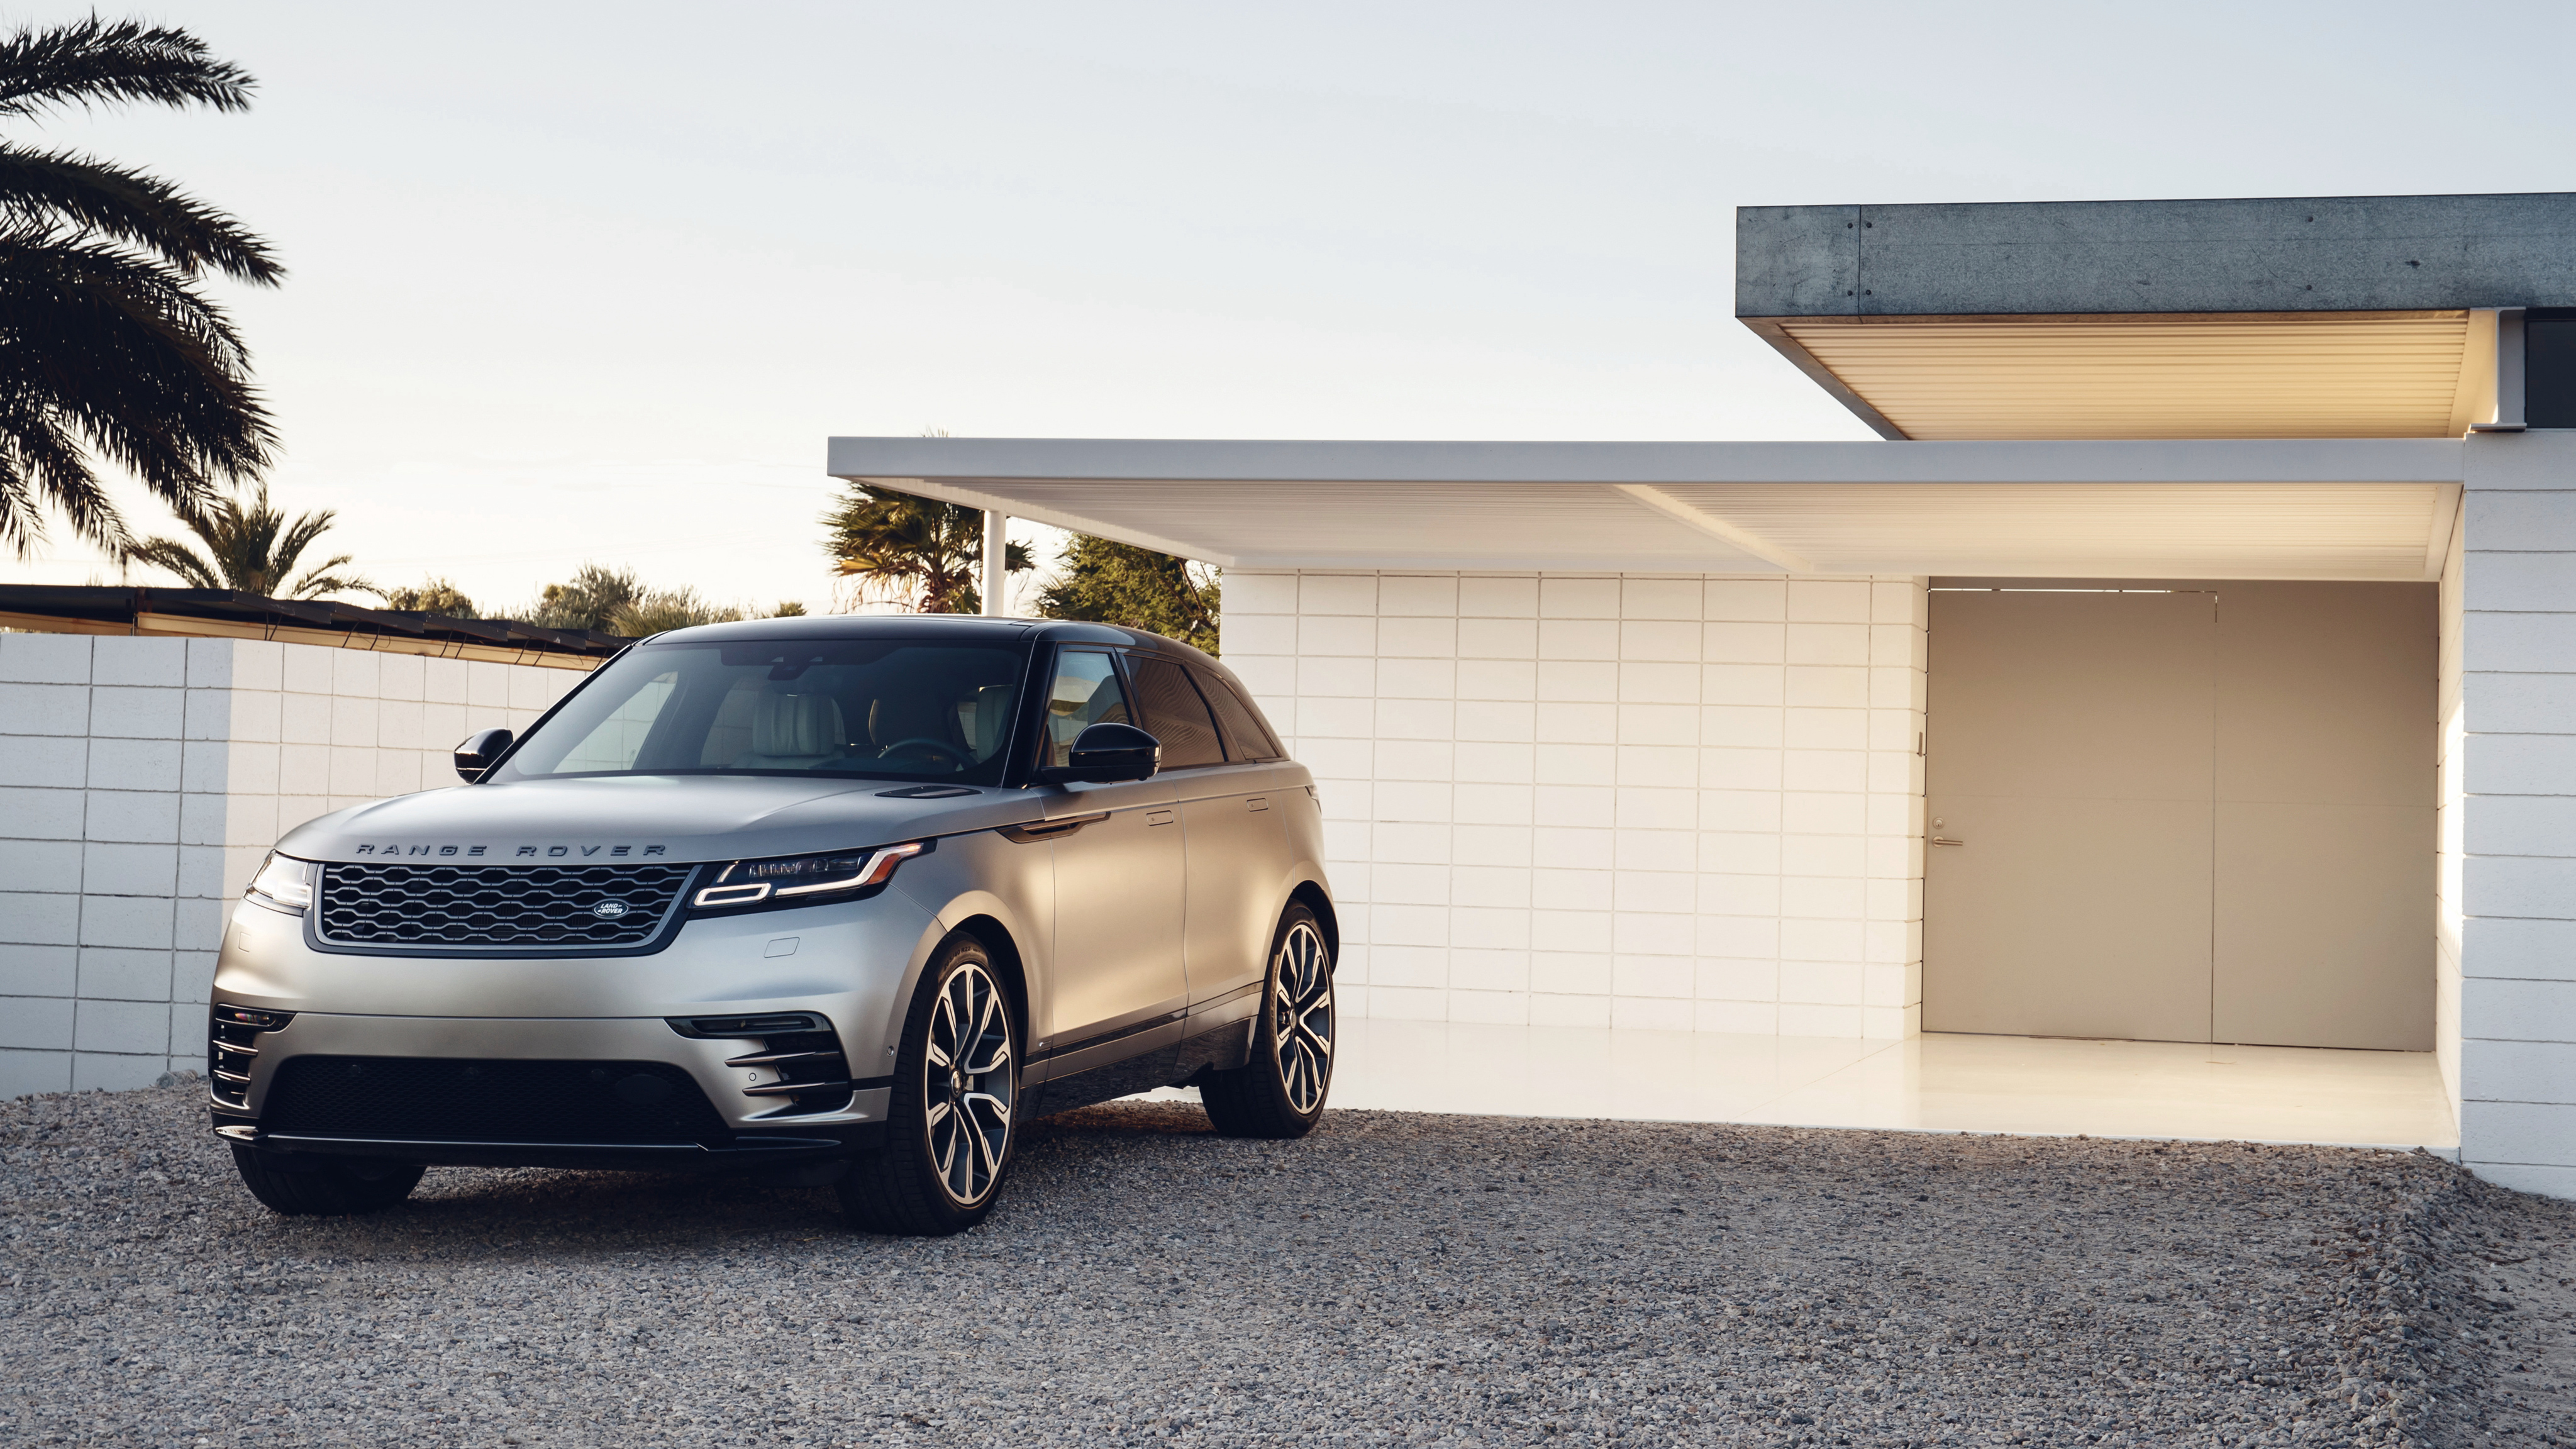 2018 Range Rover Velar R Dynamic P380 Hse Wallpaper Hd Car